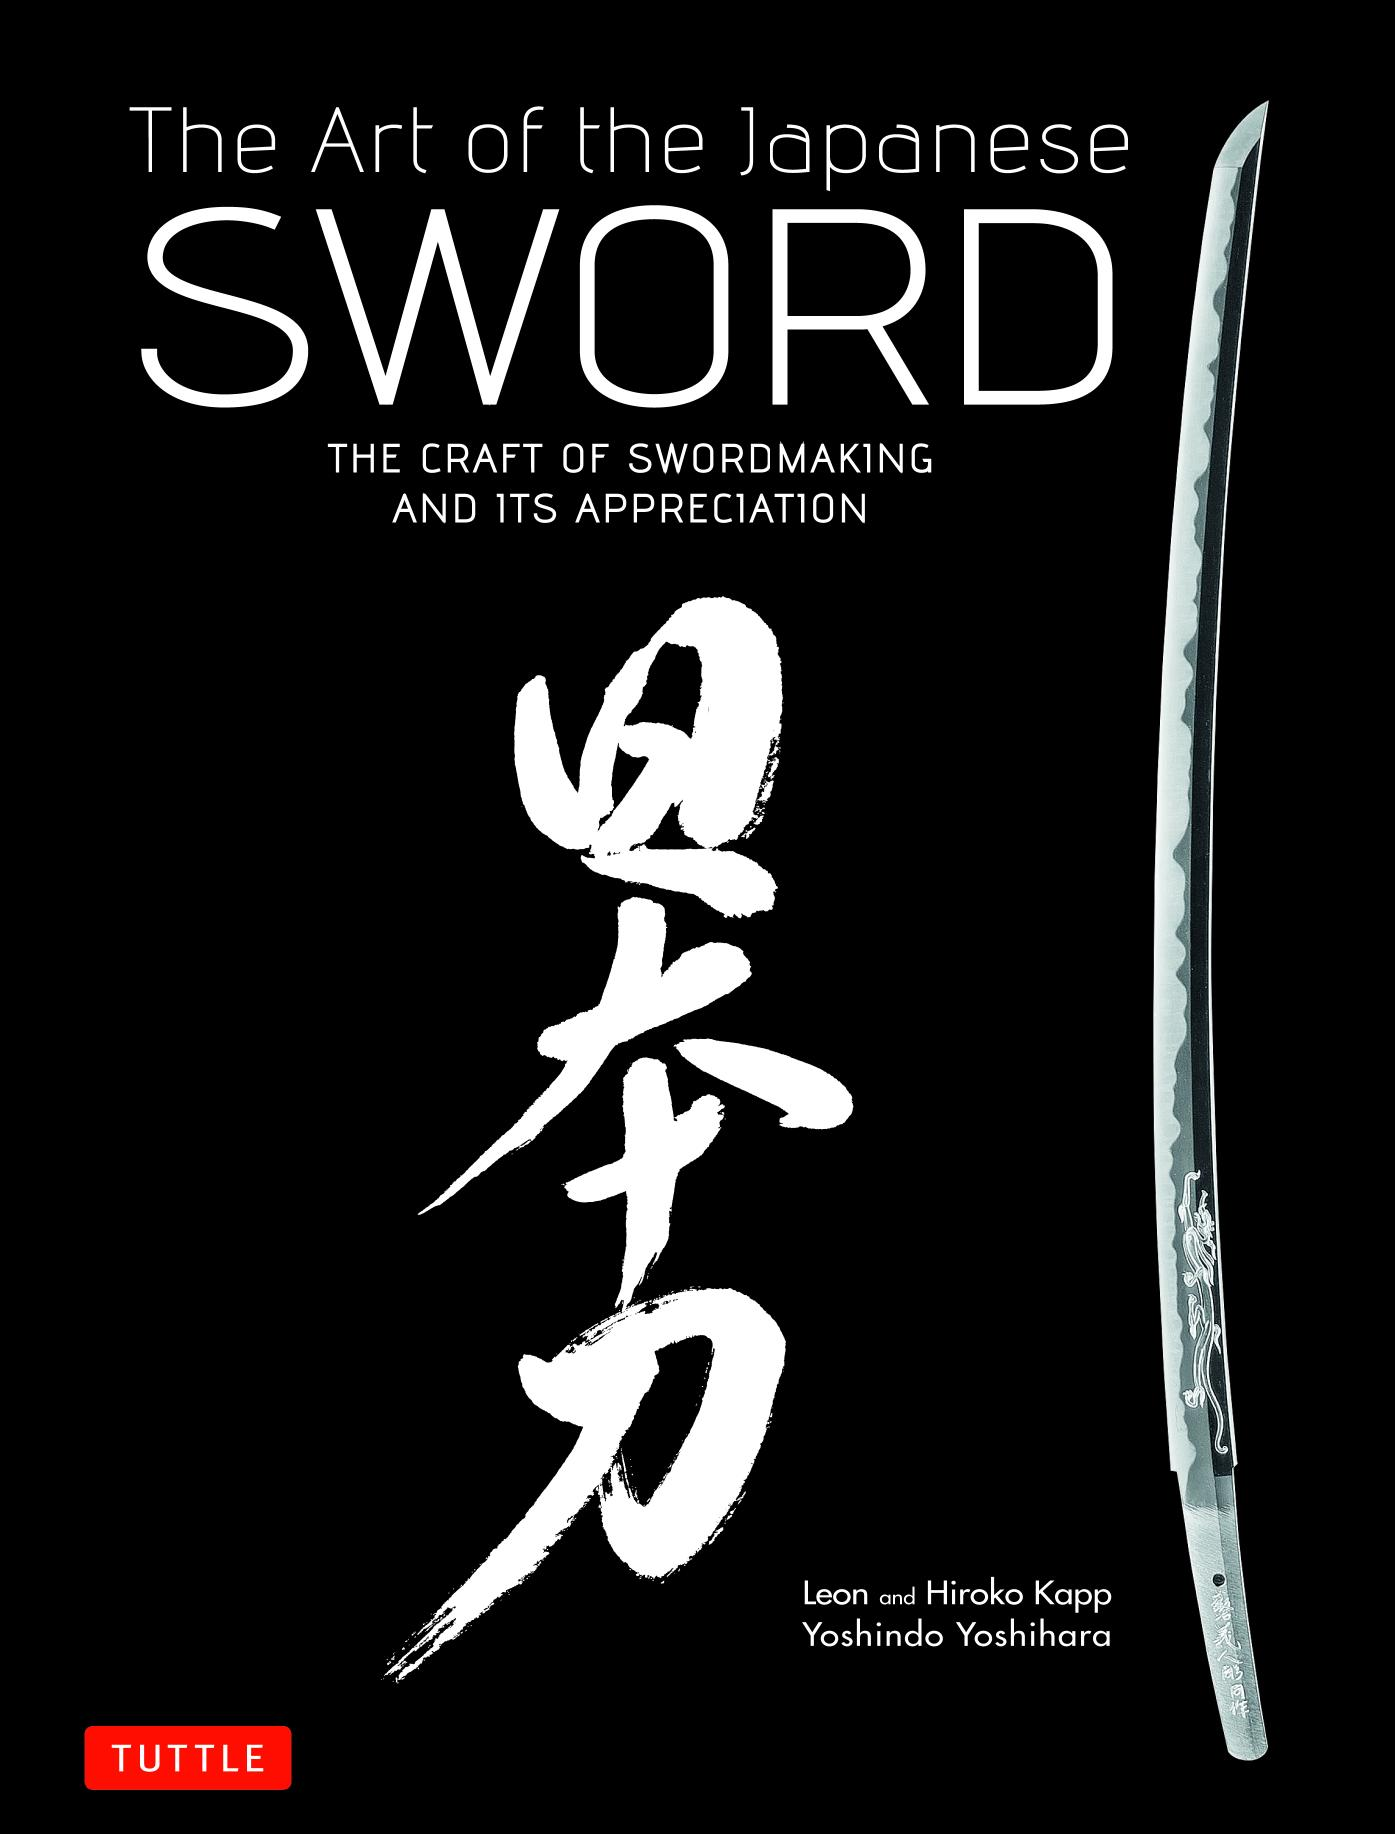 Art of the Japanese Sword